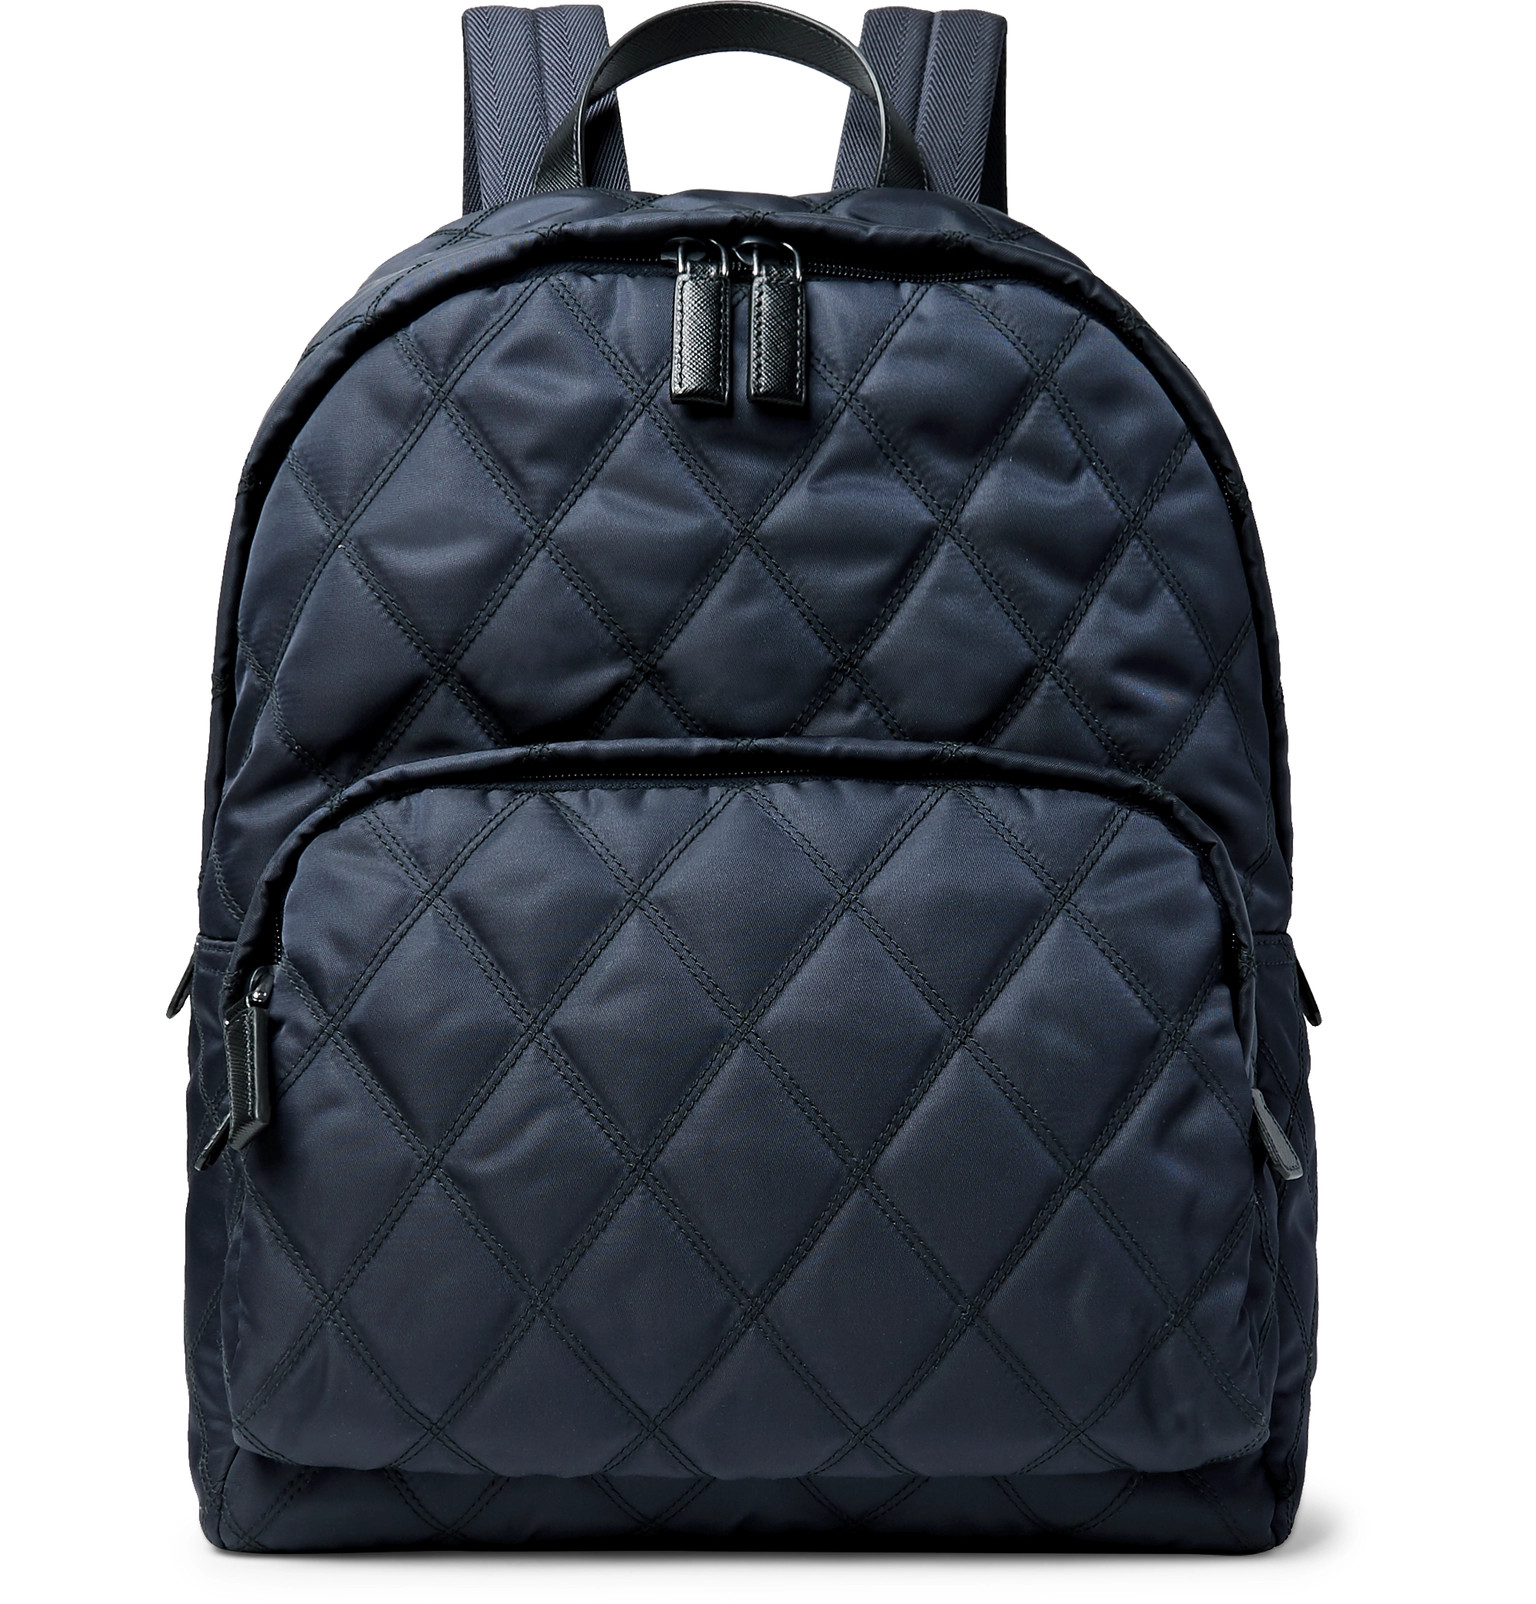 Men's Designer Bags - Shop Men's Fashion Online at MR PORTER